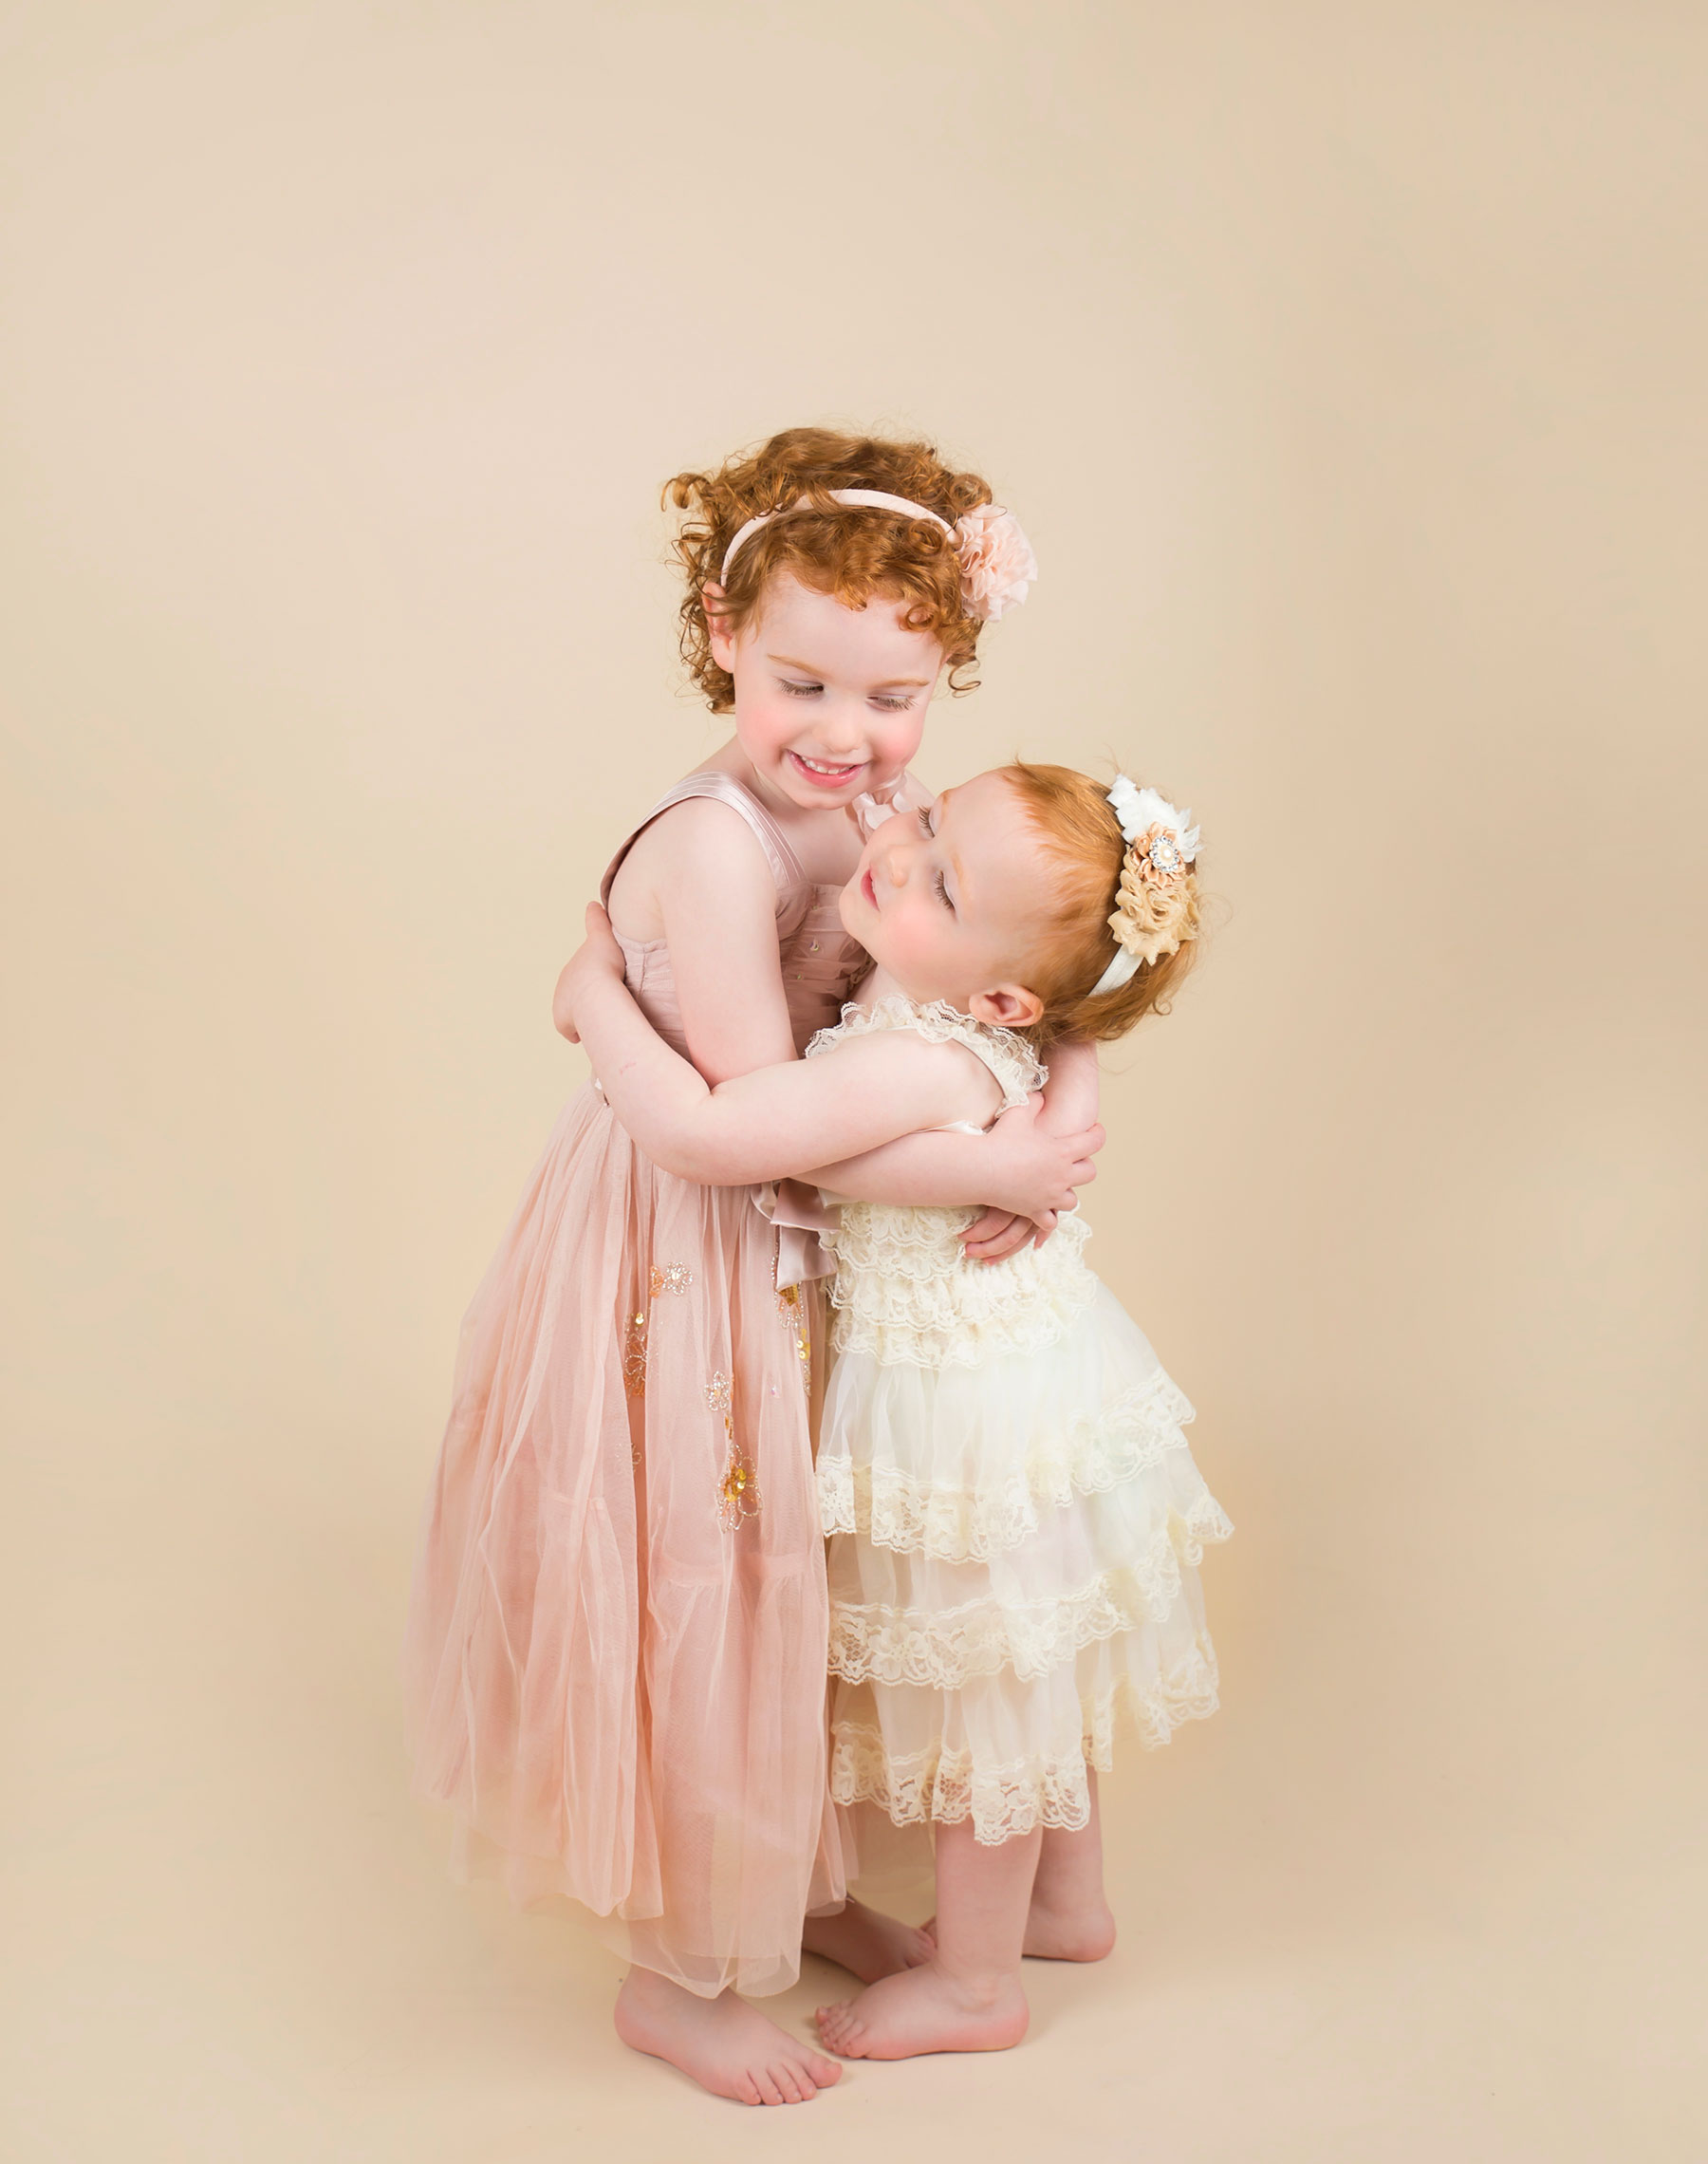 Derya Vicars Photography Photo Studio Hoylake Family Child Portraits